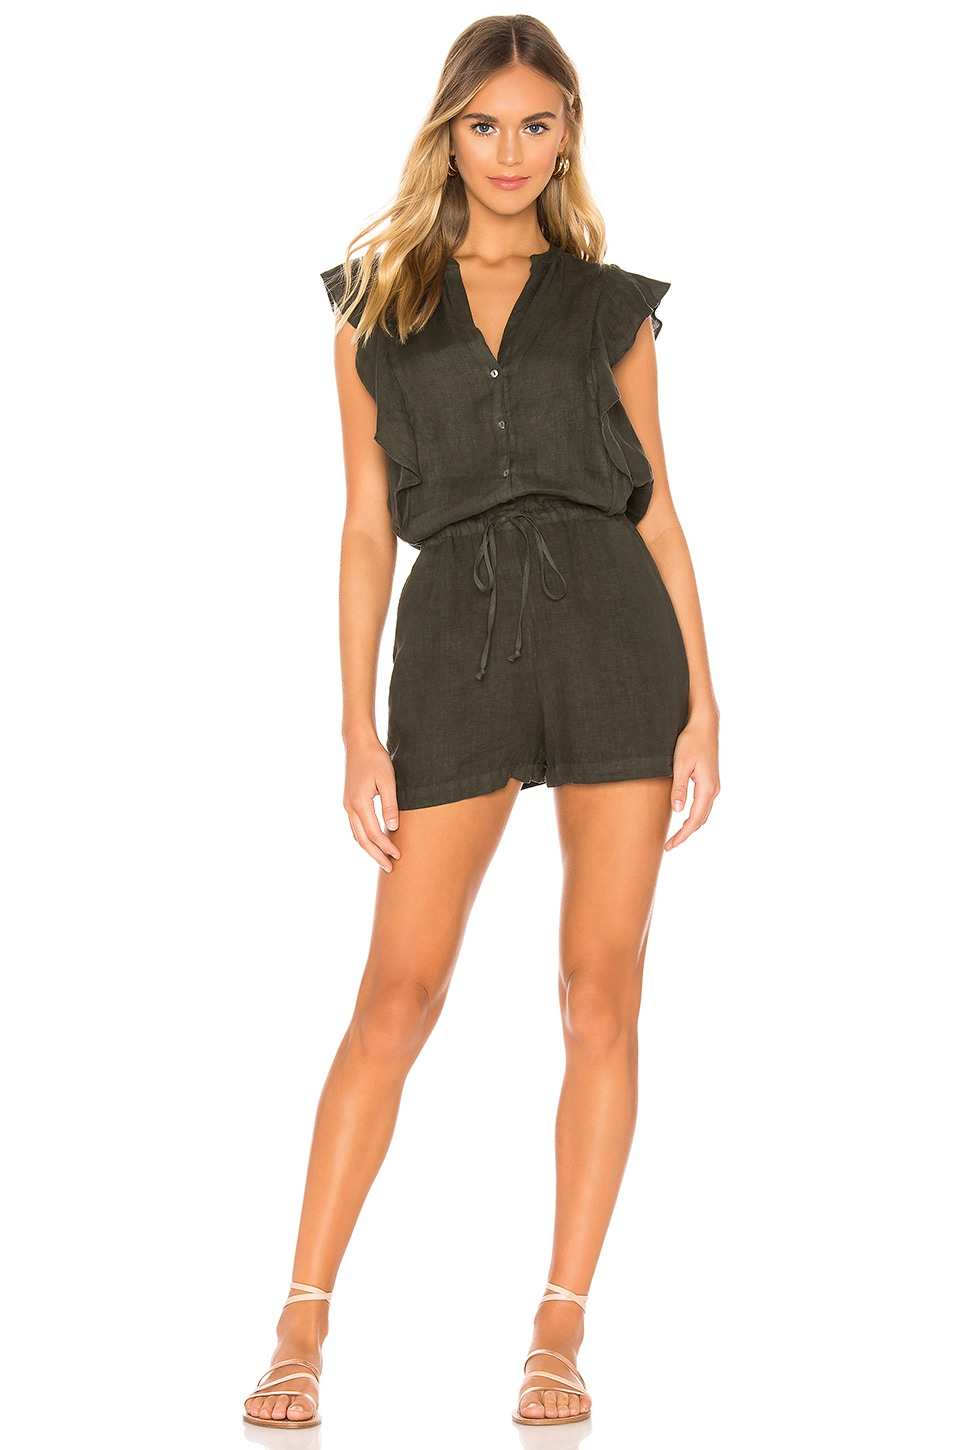 Velvet by Graham & Spencer Francis Romper in Dillweed